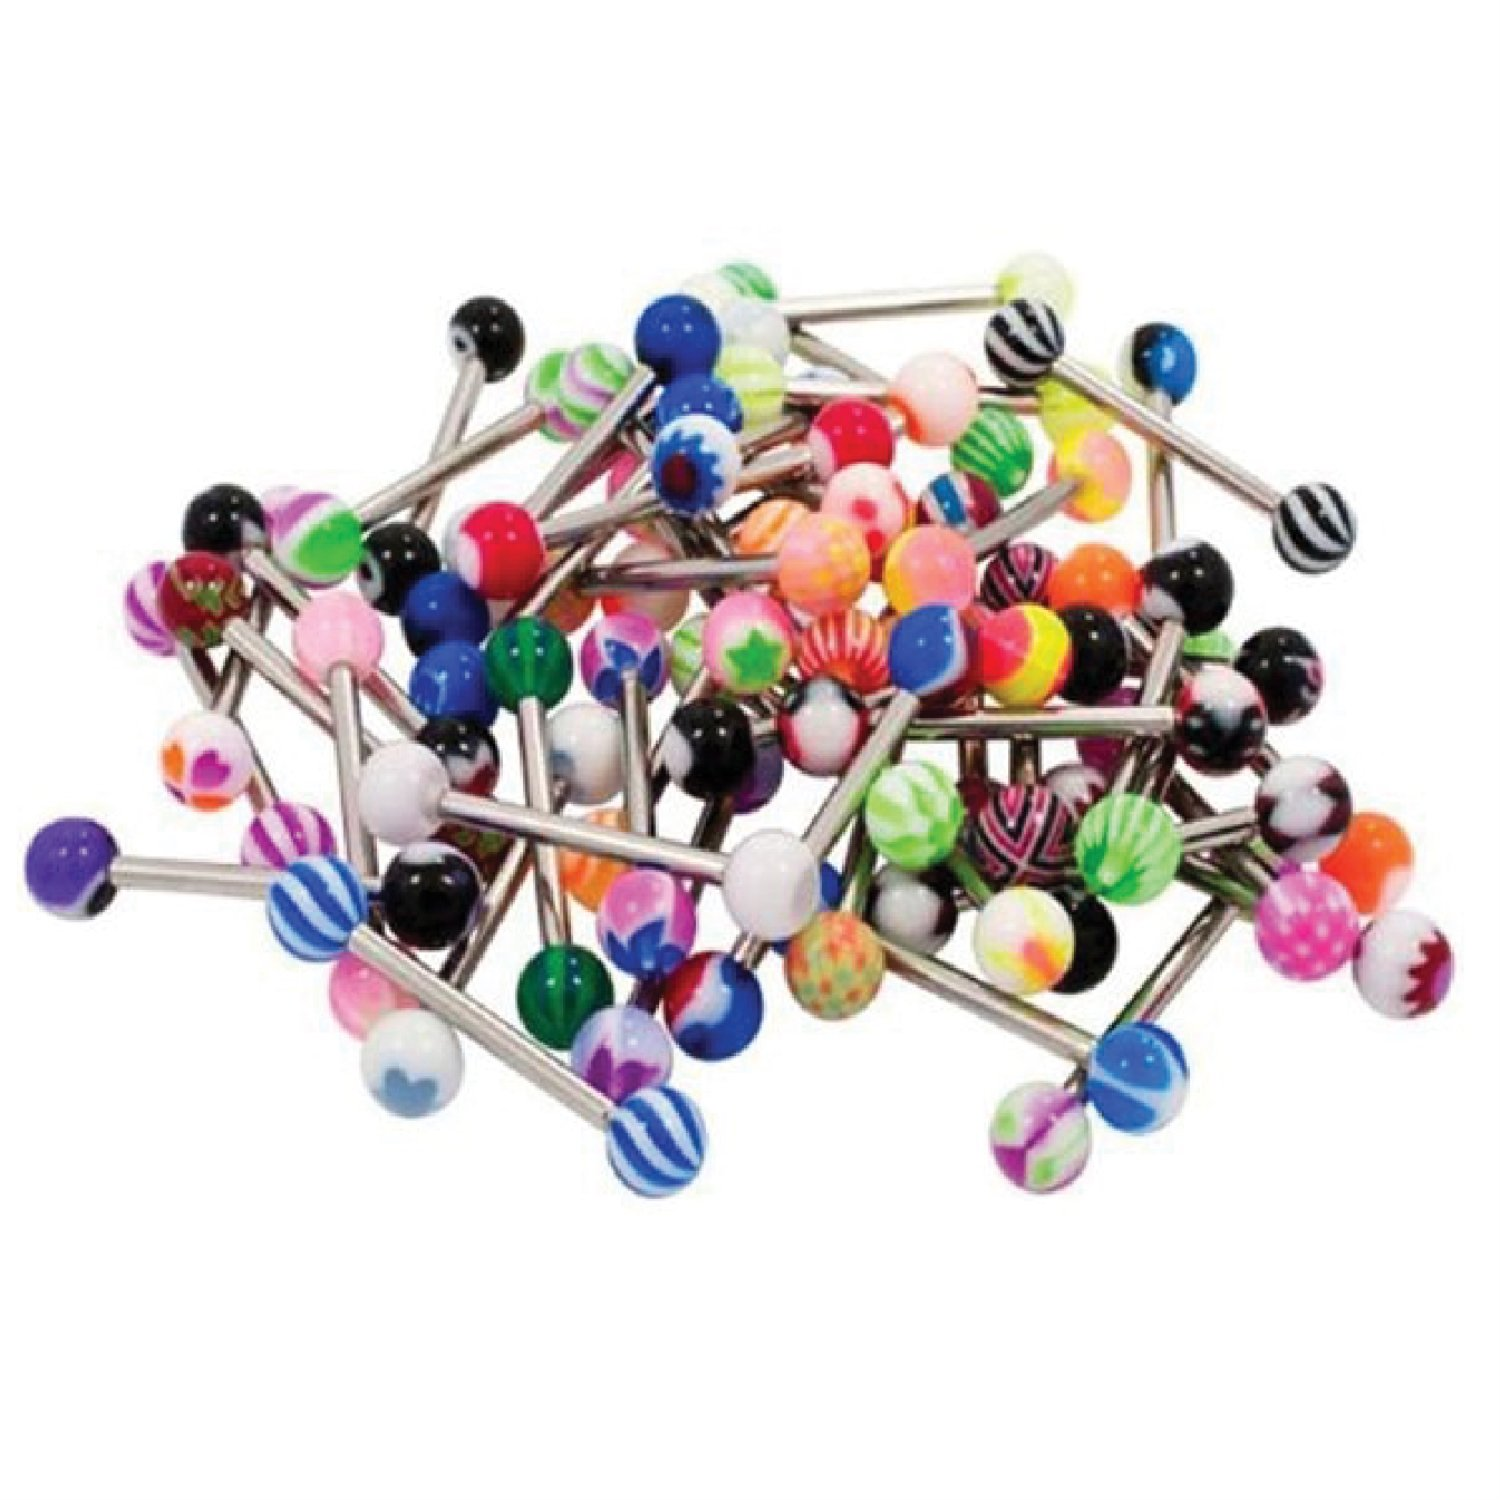 BodyJ4You Tongue Ring Assorted Lot of 20 Surgical Steel Piercing Barbells 14 Gauge No Duplicates (20 Pieces) BR3147